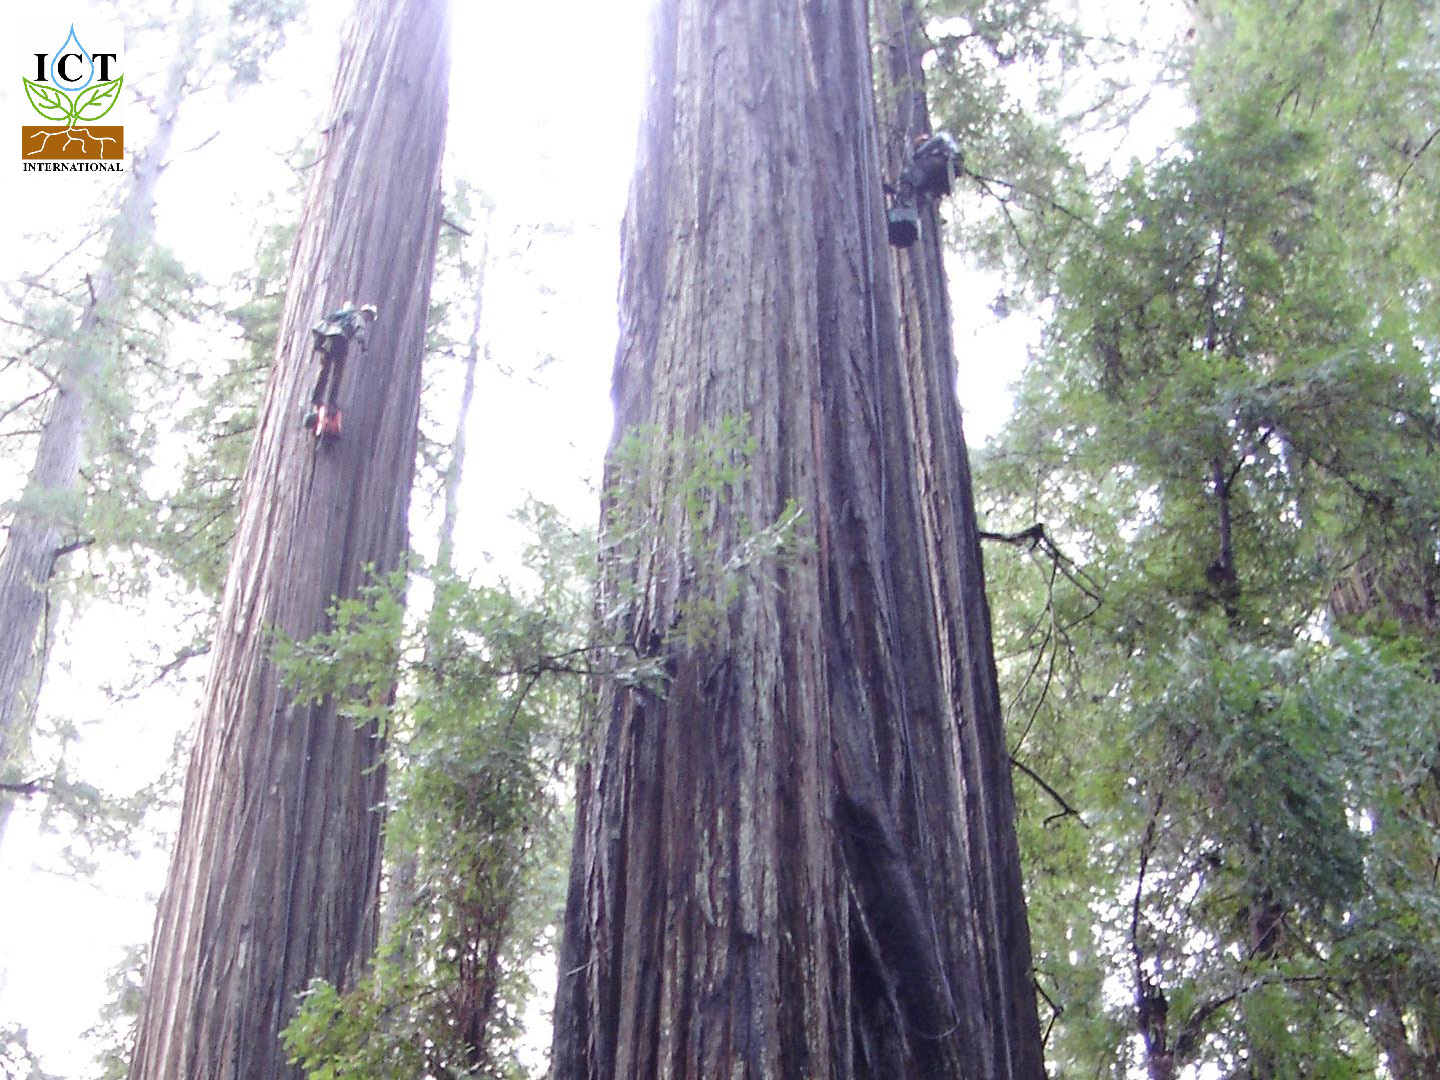 Installing Heat Ration Method HRM Sap Flow sensors on Redwoods